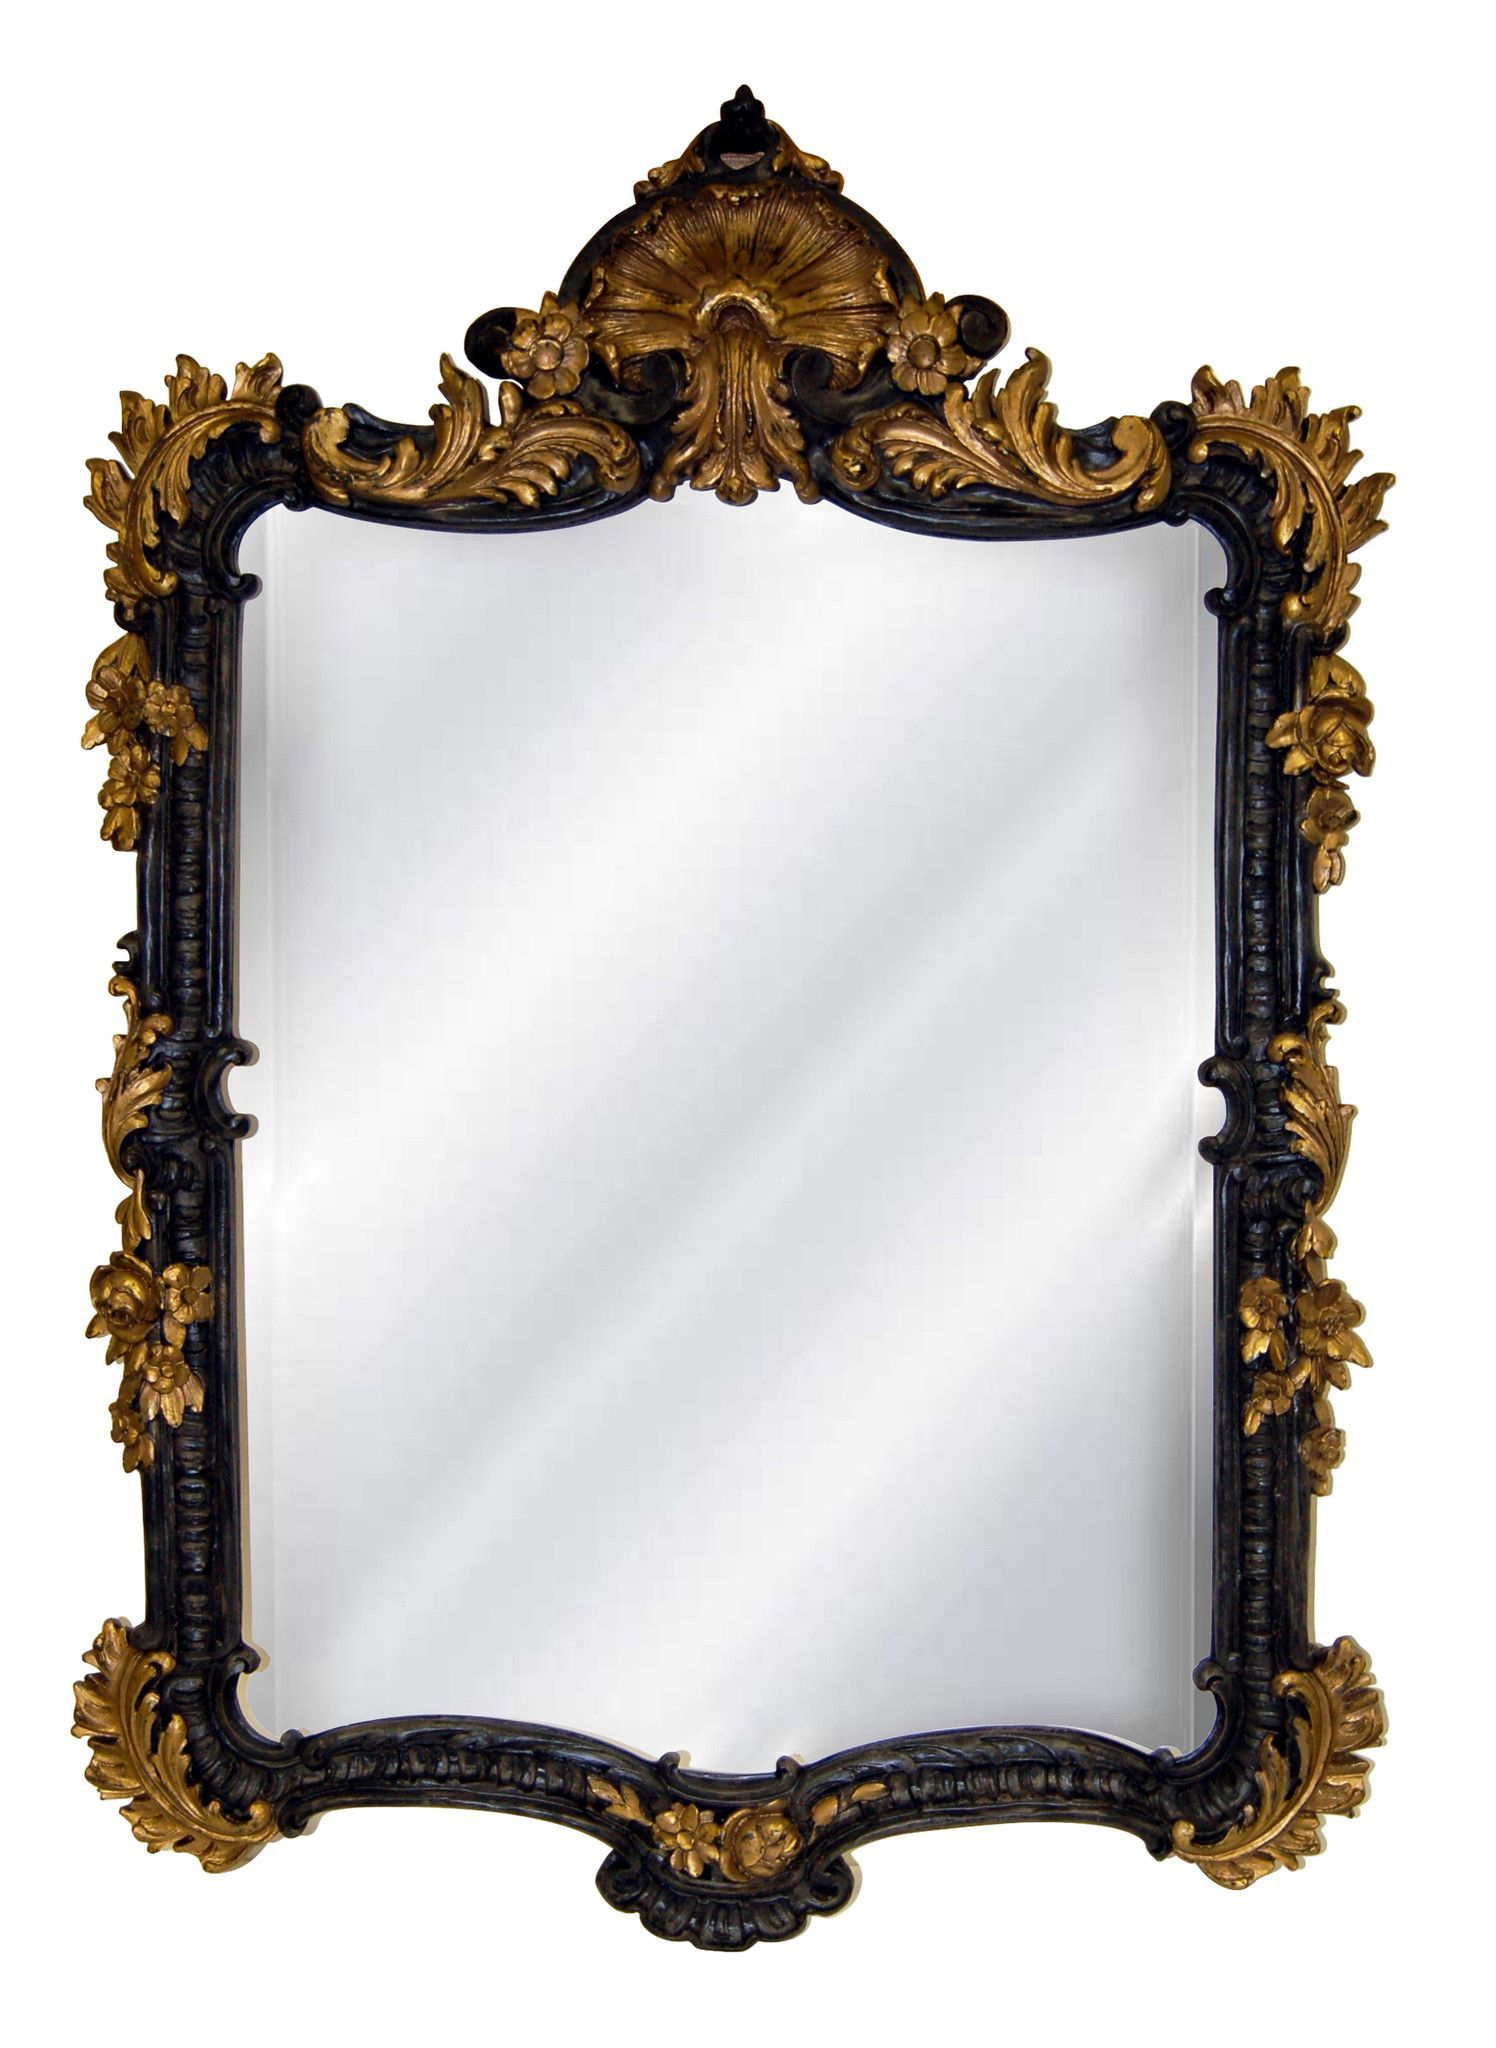 Ornate Shell Top Wall Mirror Antique Reproduction, Old Black Gold ...